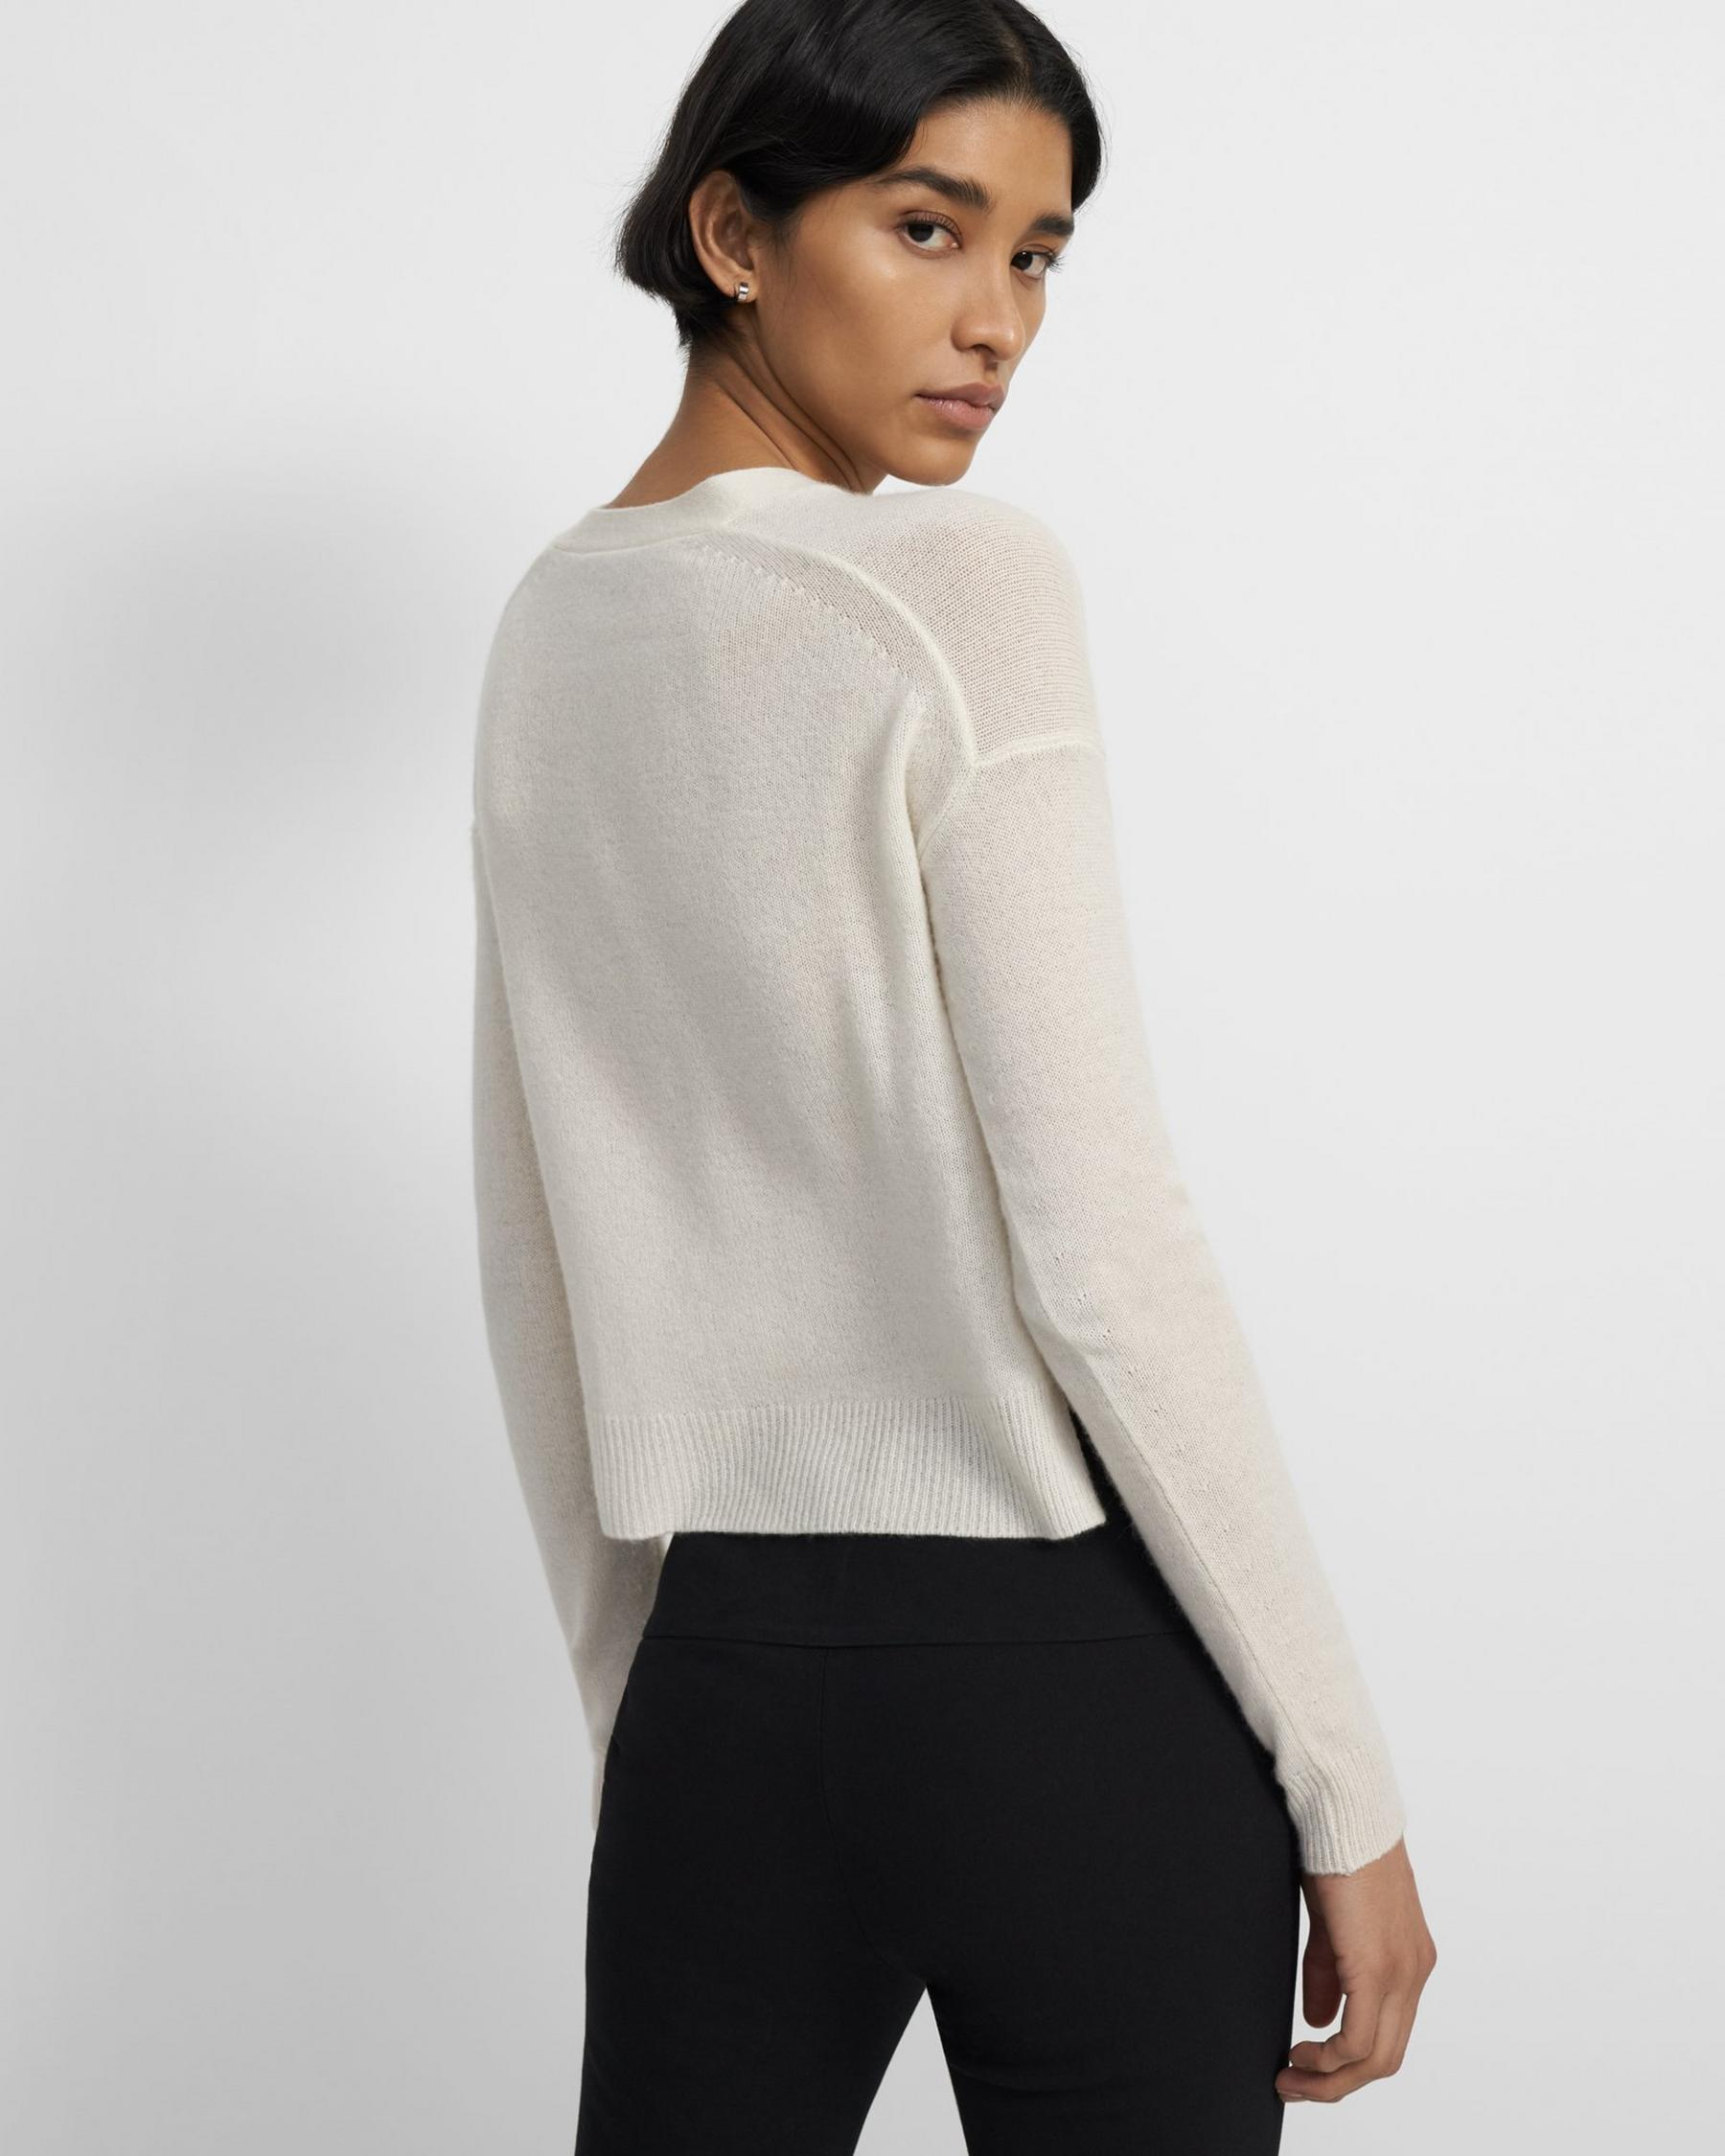 Cropped Cardigan in Feather Cashmere 2